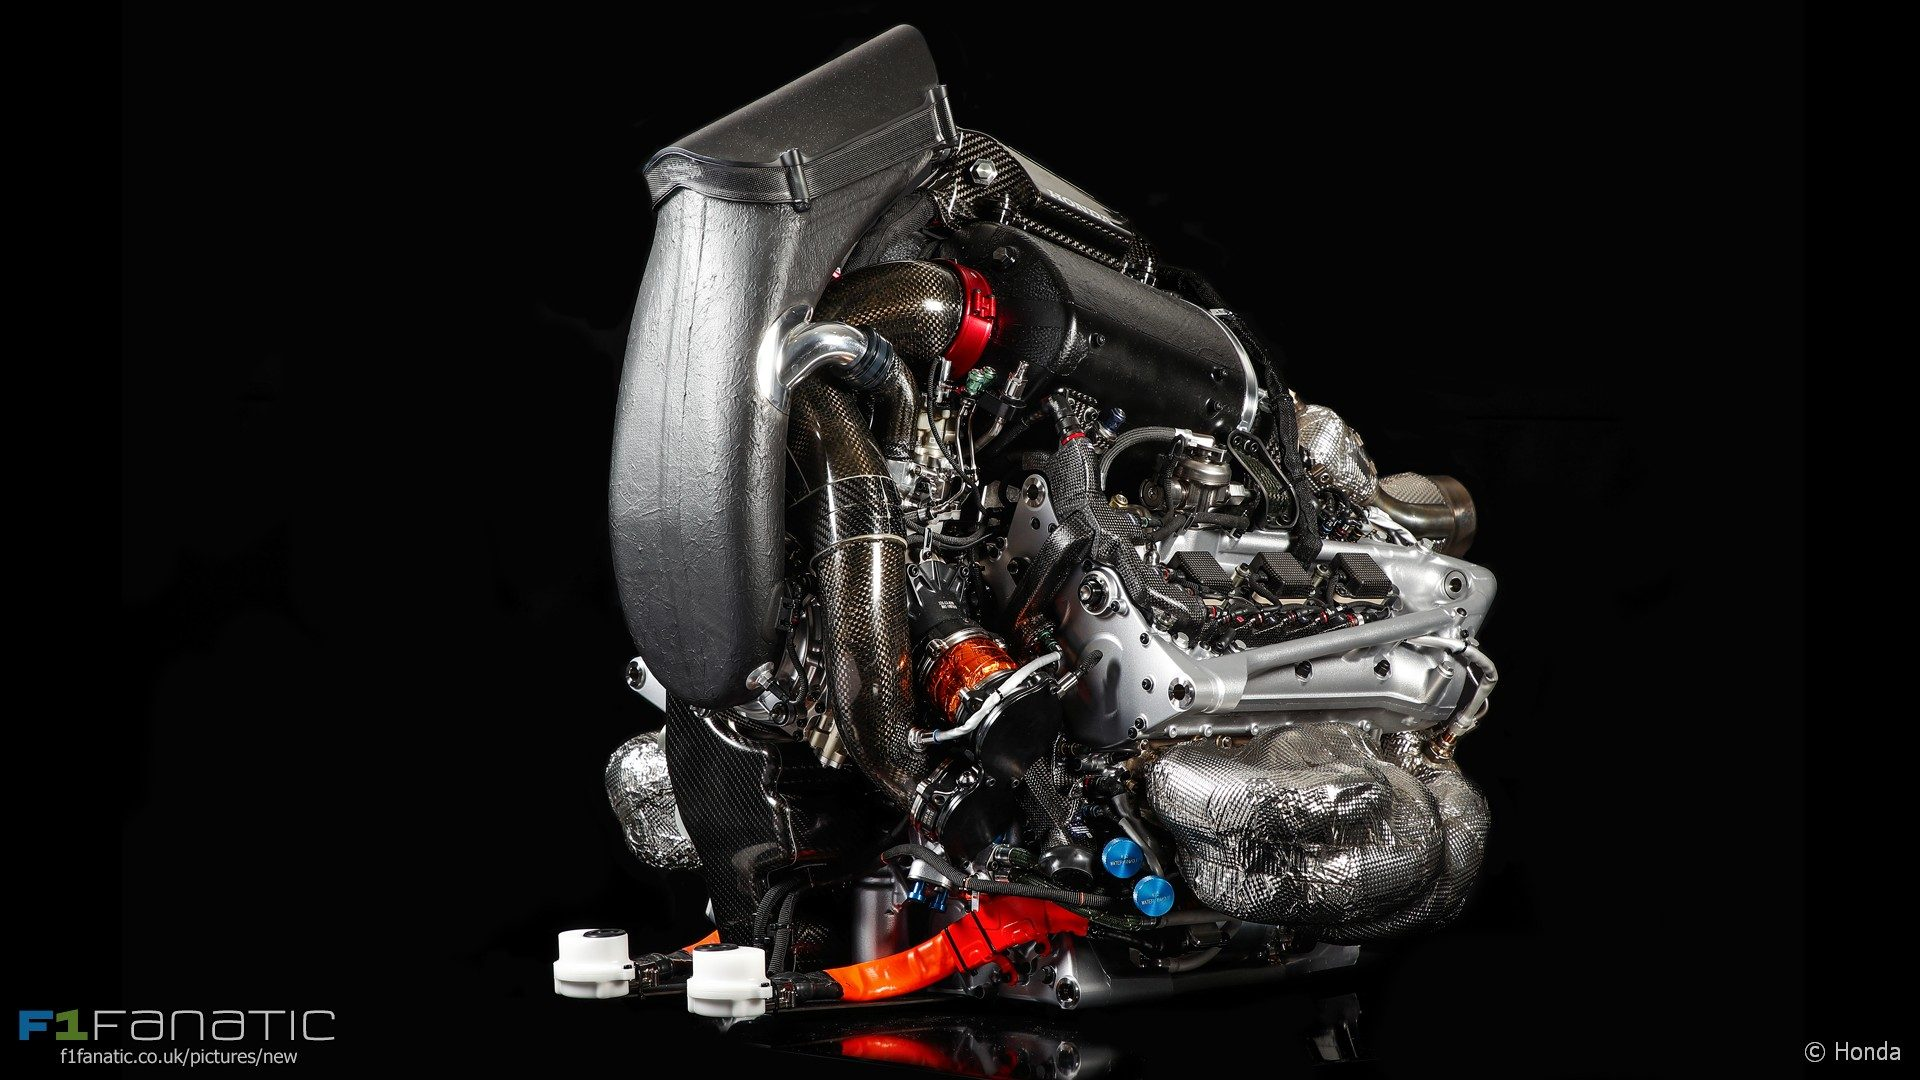 f1 fanatic round-up: electric-only f1 unlikely within next decade